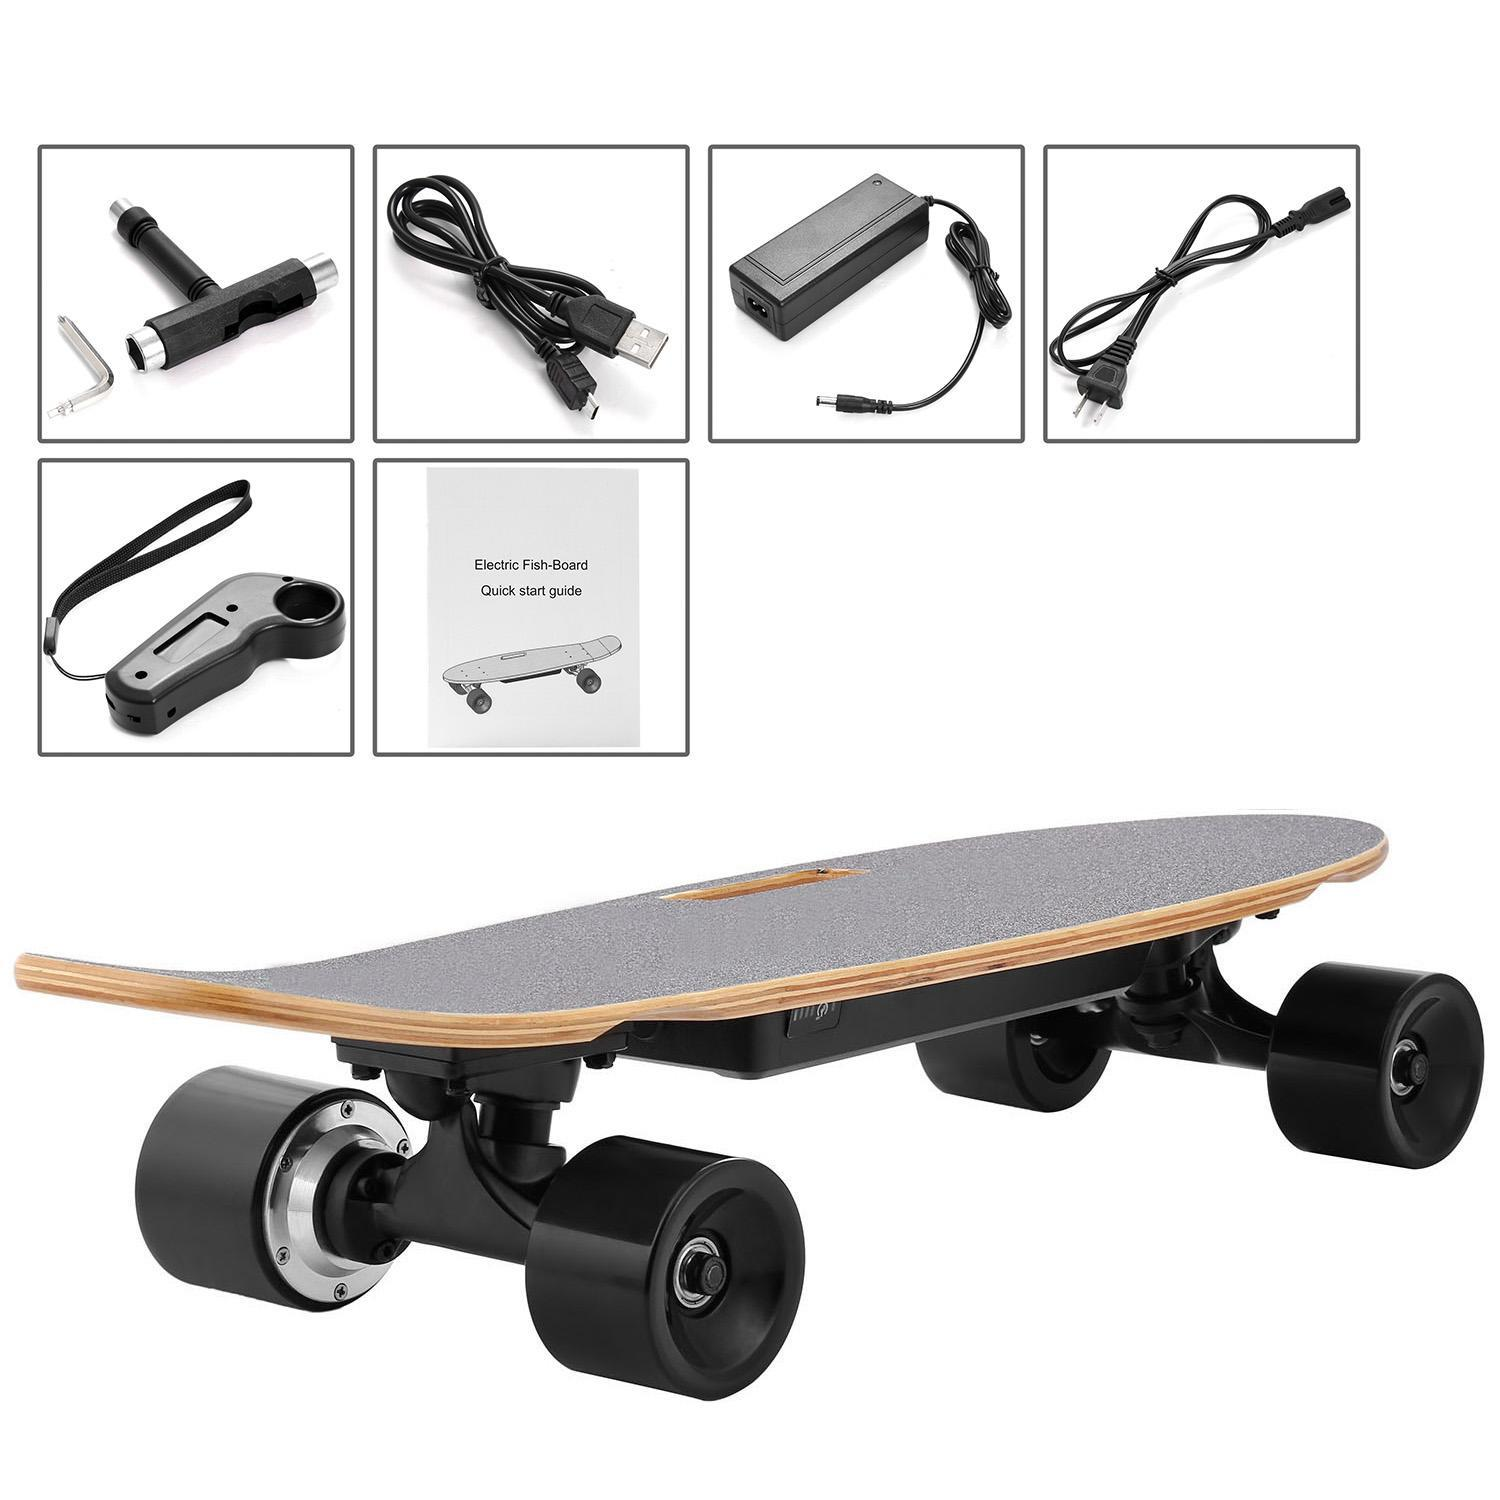 New Electric Fish-Board Skateboard Transportation Electric Longboard with Wireless Handheld Remote Control by